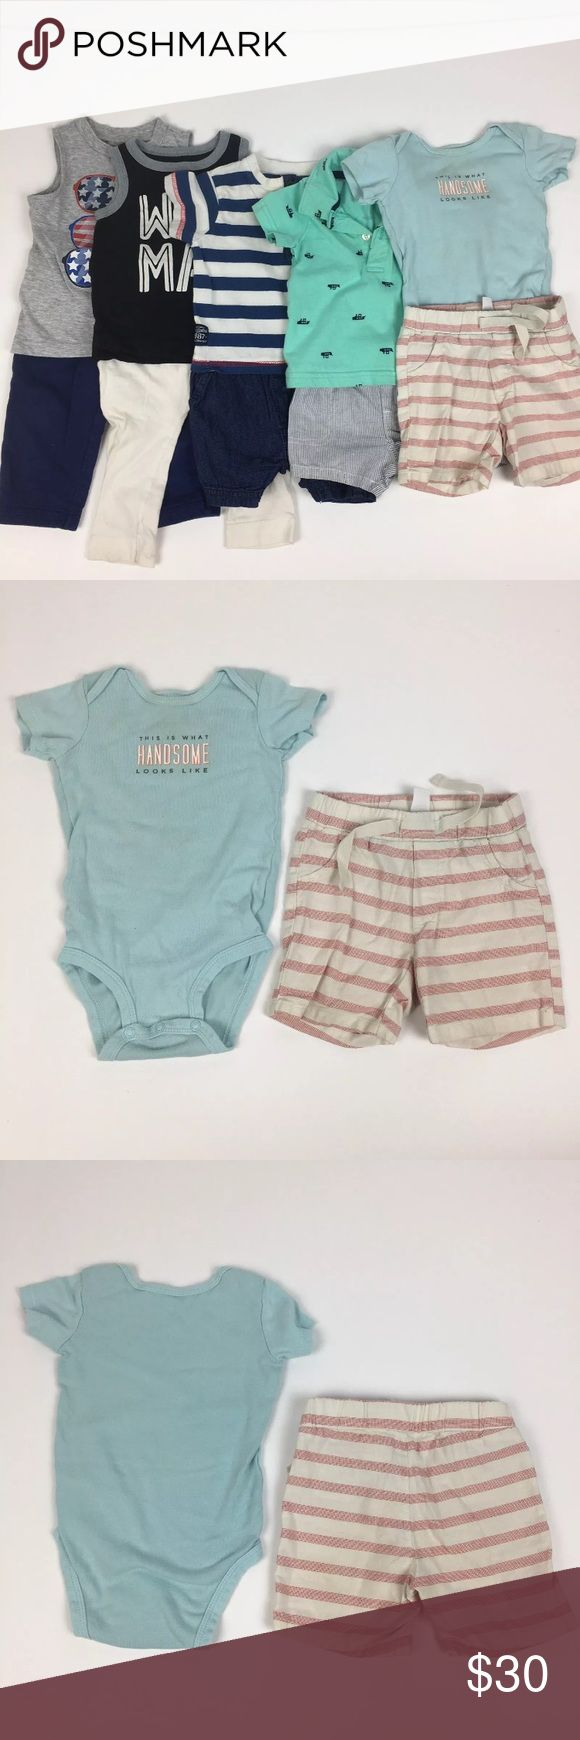 """Lot Of Baby Boy Clothes 6-9 mo Old Navy Carter's All in good gently used condition.   1 Life and Legend Striped Jumper 6-9 mo  1 Carter's """"This is what handsome looks like"""" onesie 9 mo (there is some shadow staining on the neck and sleeve - see pics)  1 Old Navy striped red and cream shorts 6-12 mo  1 Old Navy """"wild Man"""" bro tank 6-12 mo  1 Old Navy cream joggers 6-12 mo (little stain on the knee - see pics)  1 Carter's steamboat polo 6 mo  1 Carter's striped shorts 6 mo  1 Okie Dokie…"""